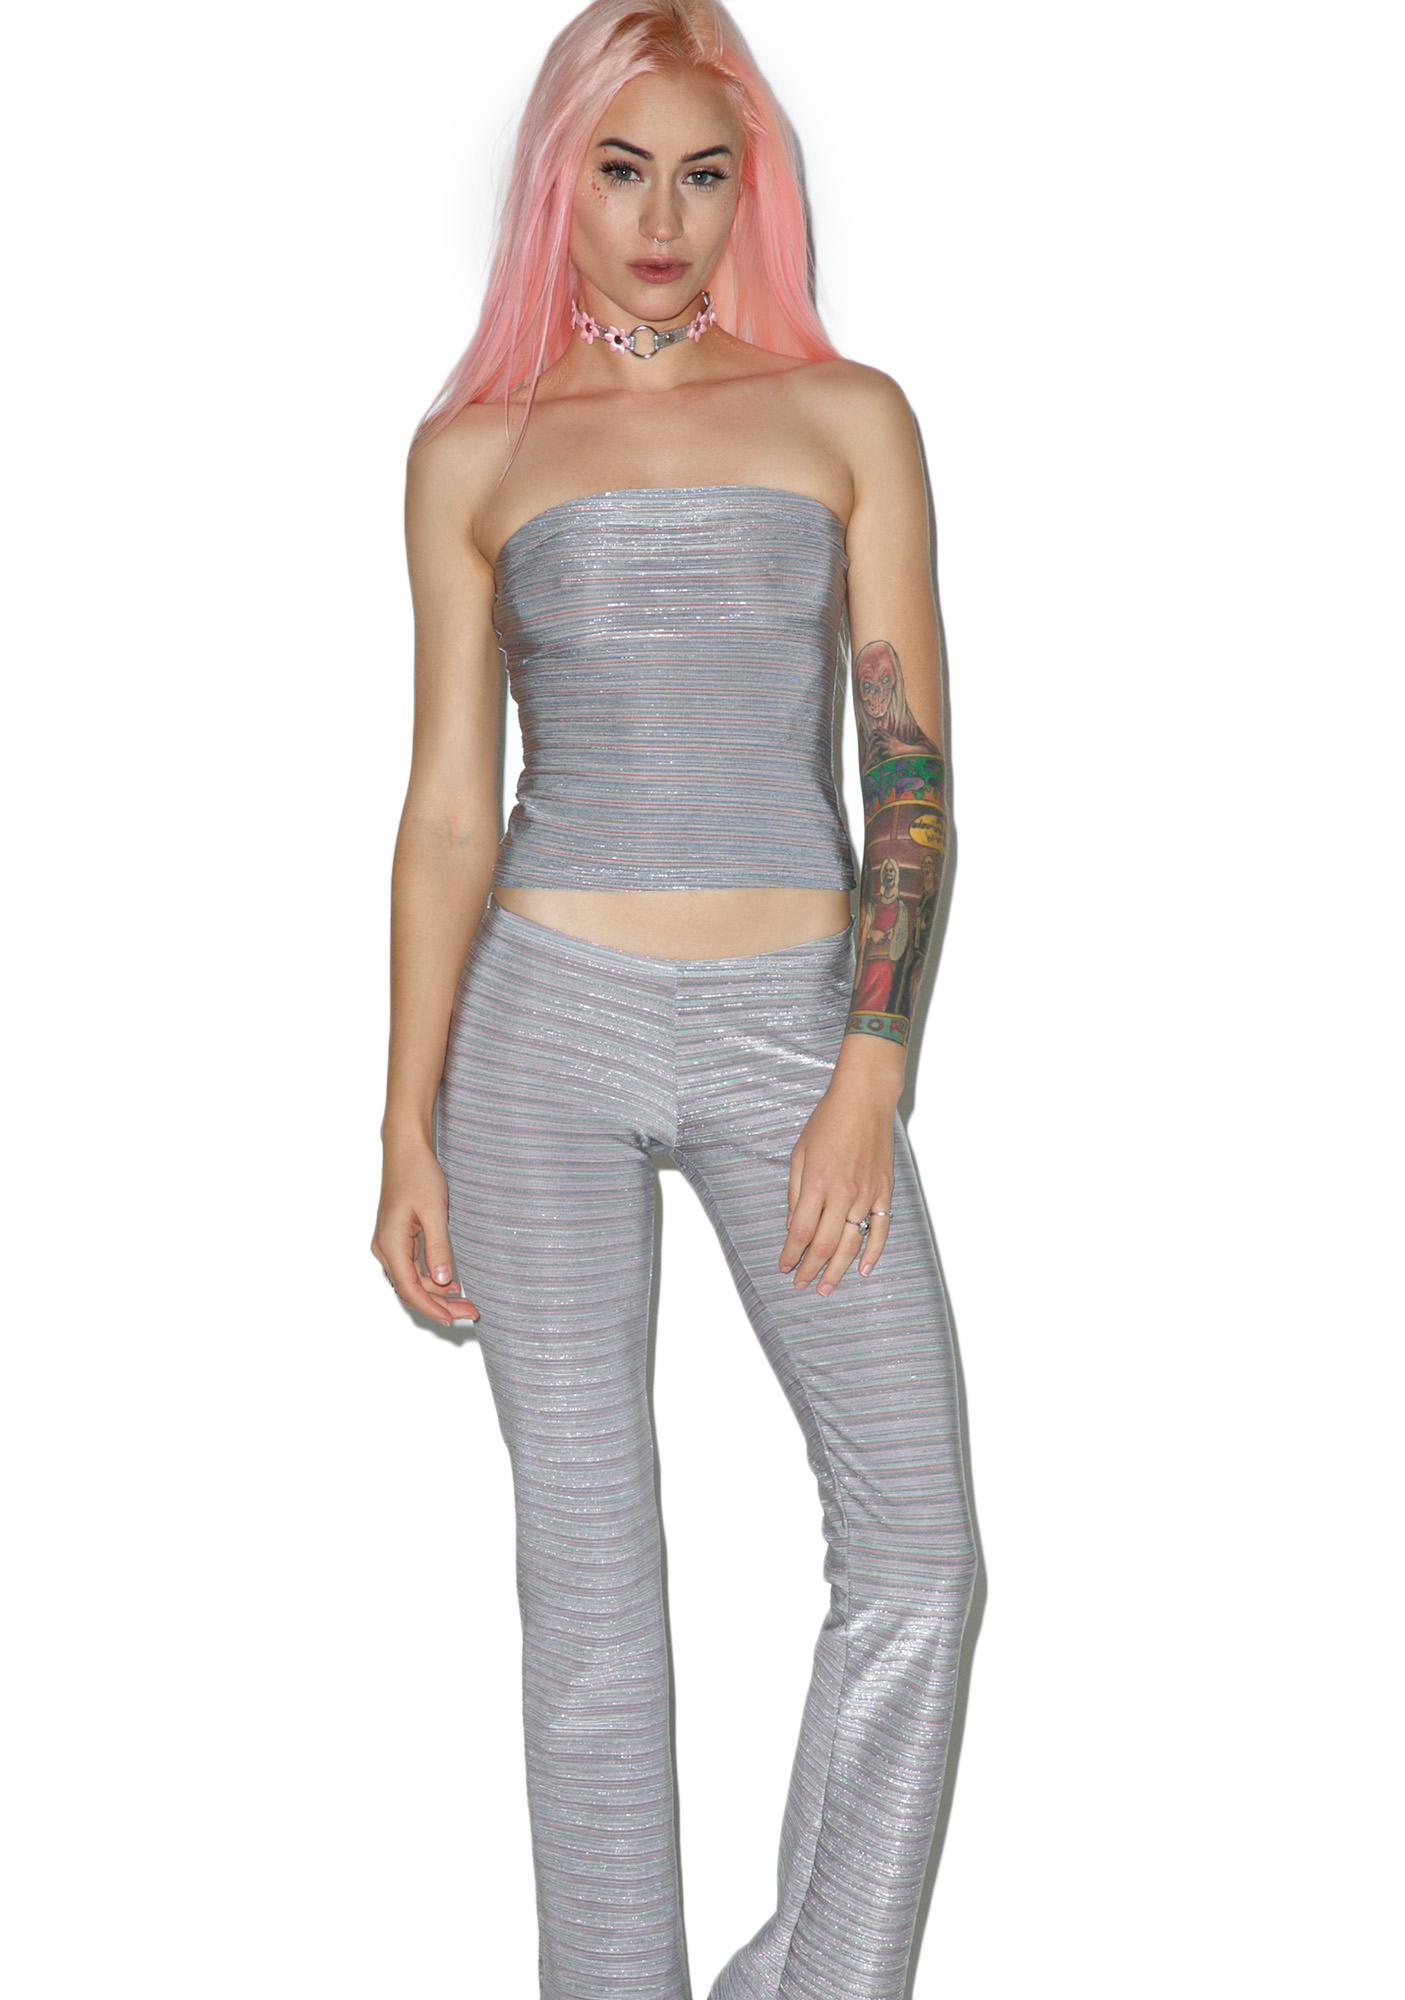 American Deadstock Hard Candy Tube Top